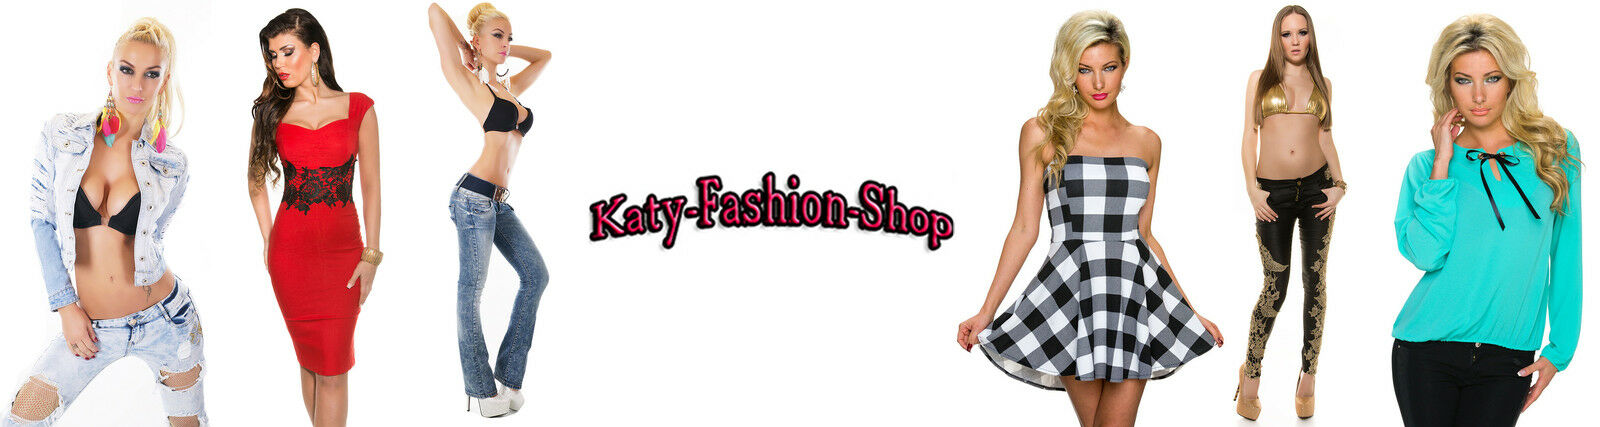 Katy-Fashion-Shop